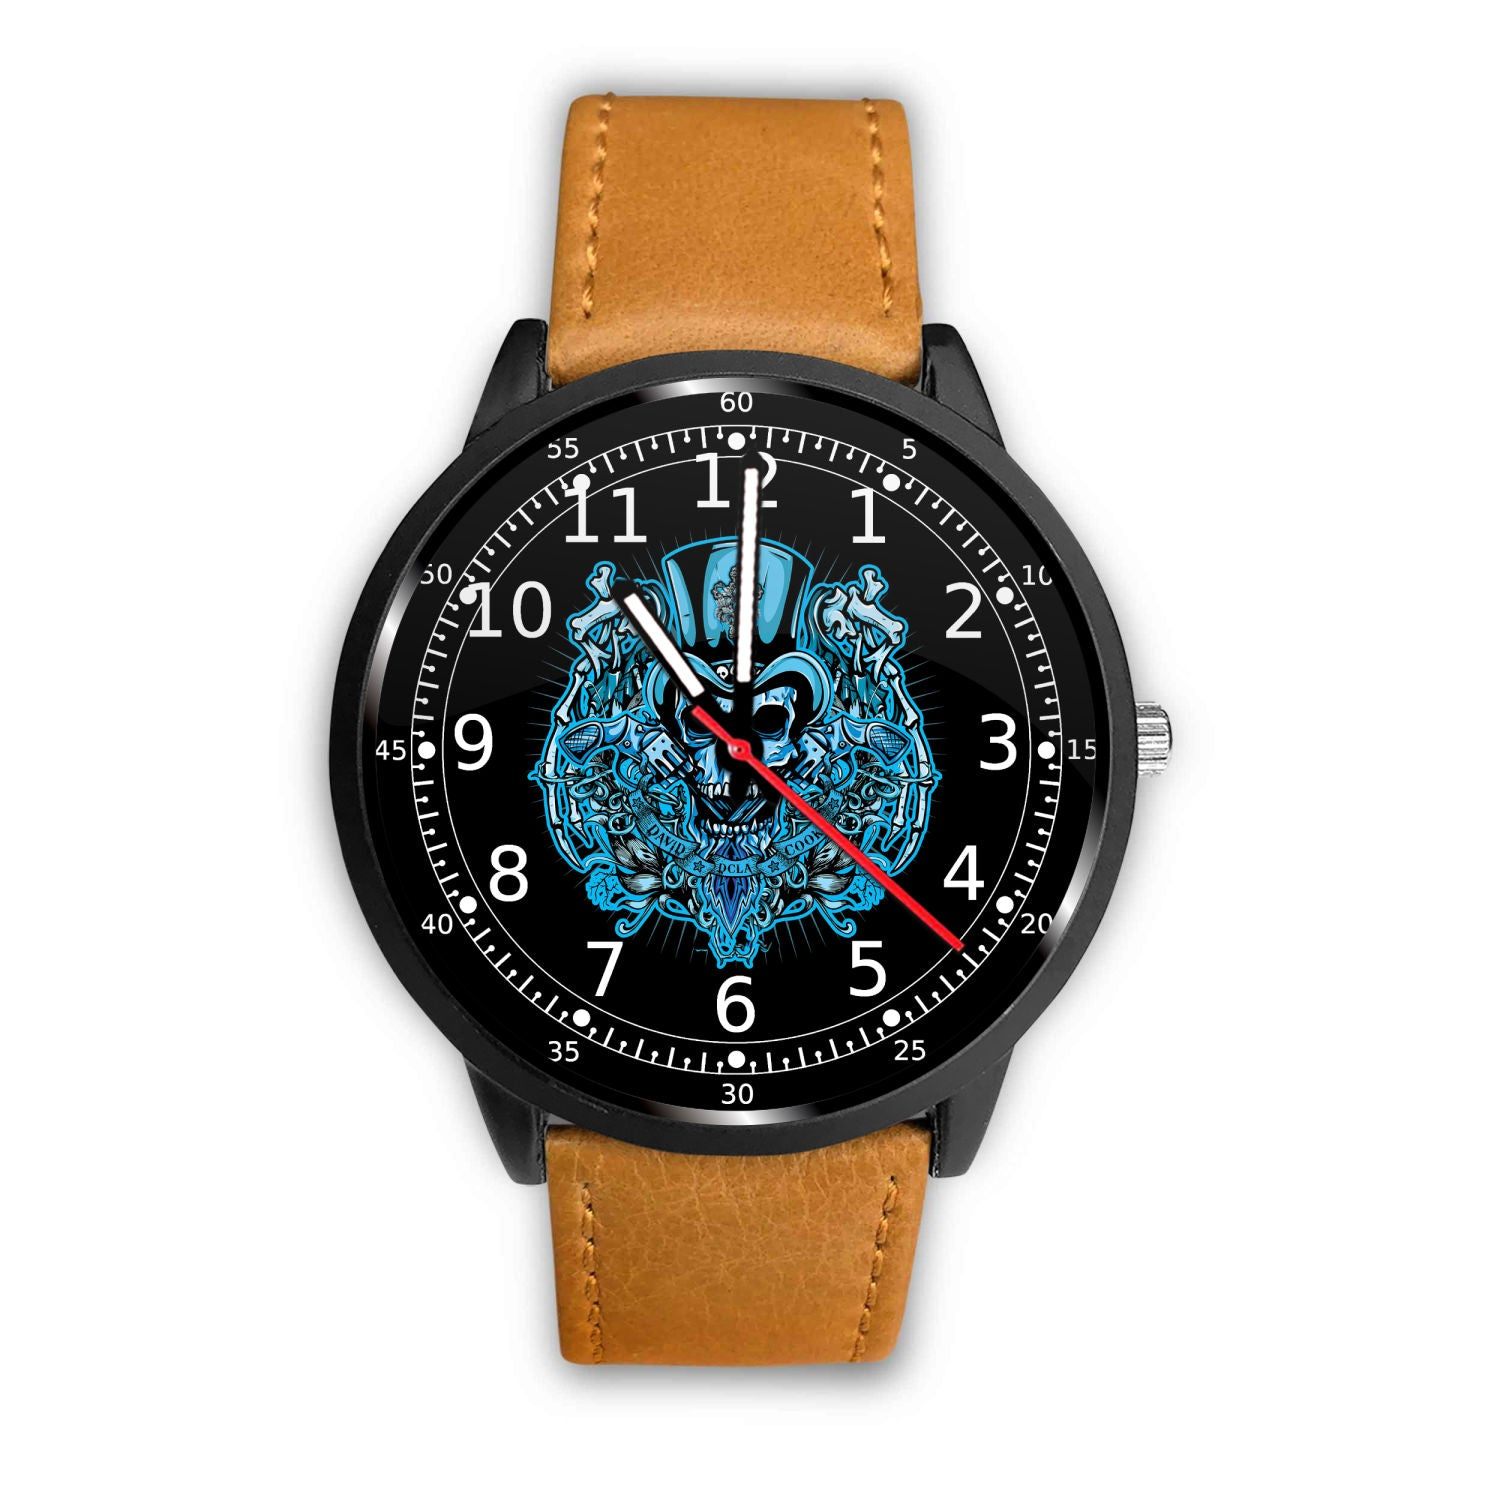 3D Skull Watch - Stainless steel back with leather/ stainless steel band 005